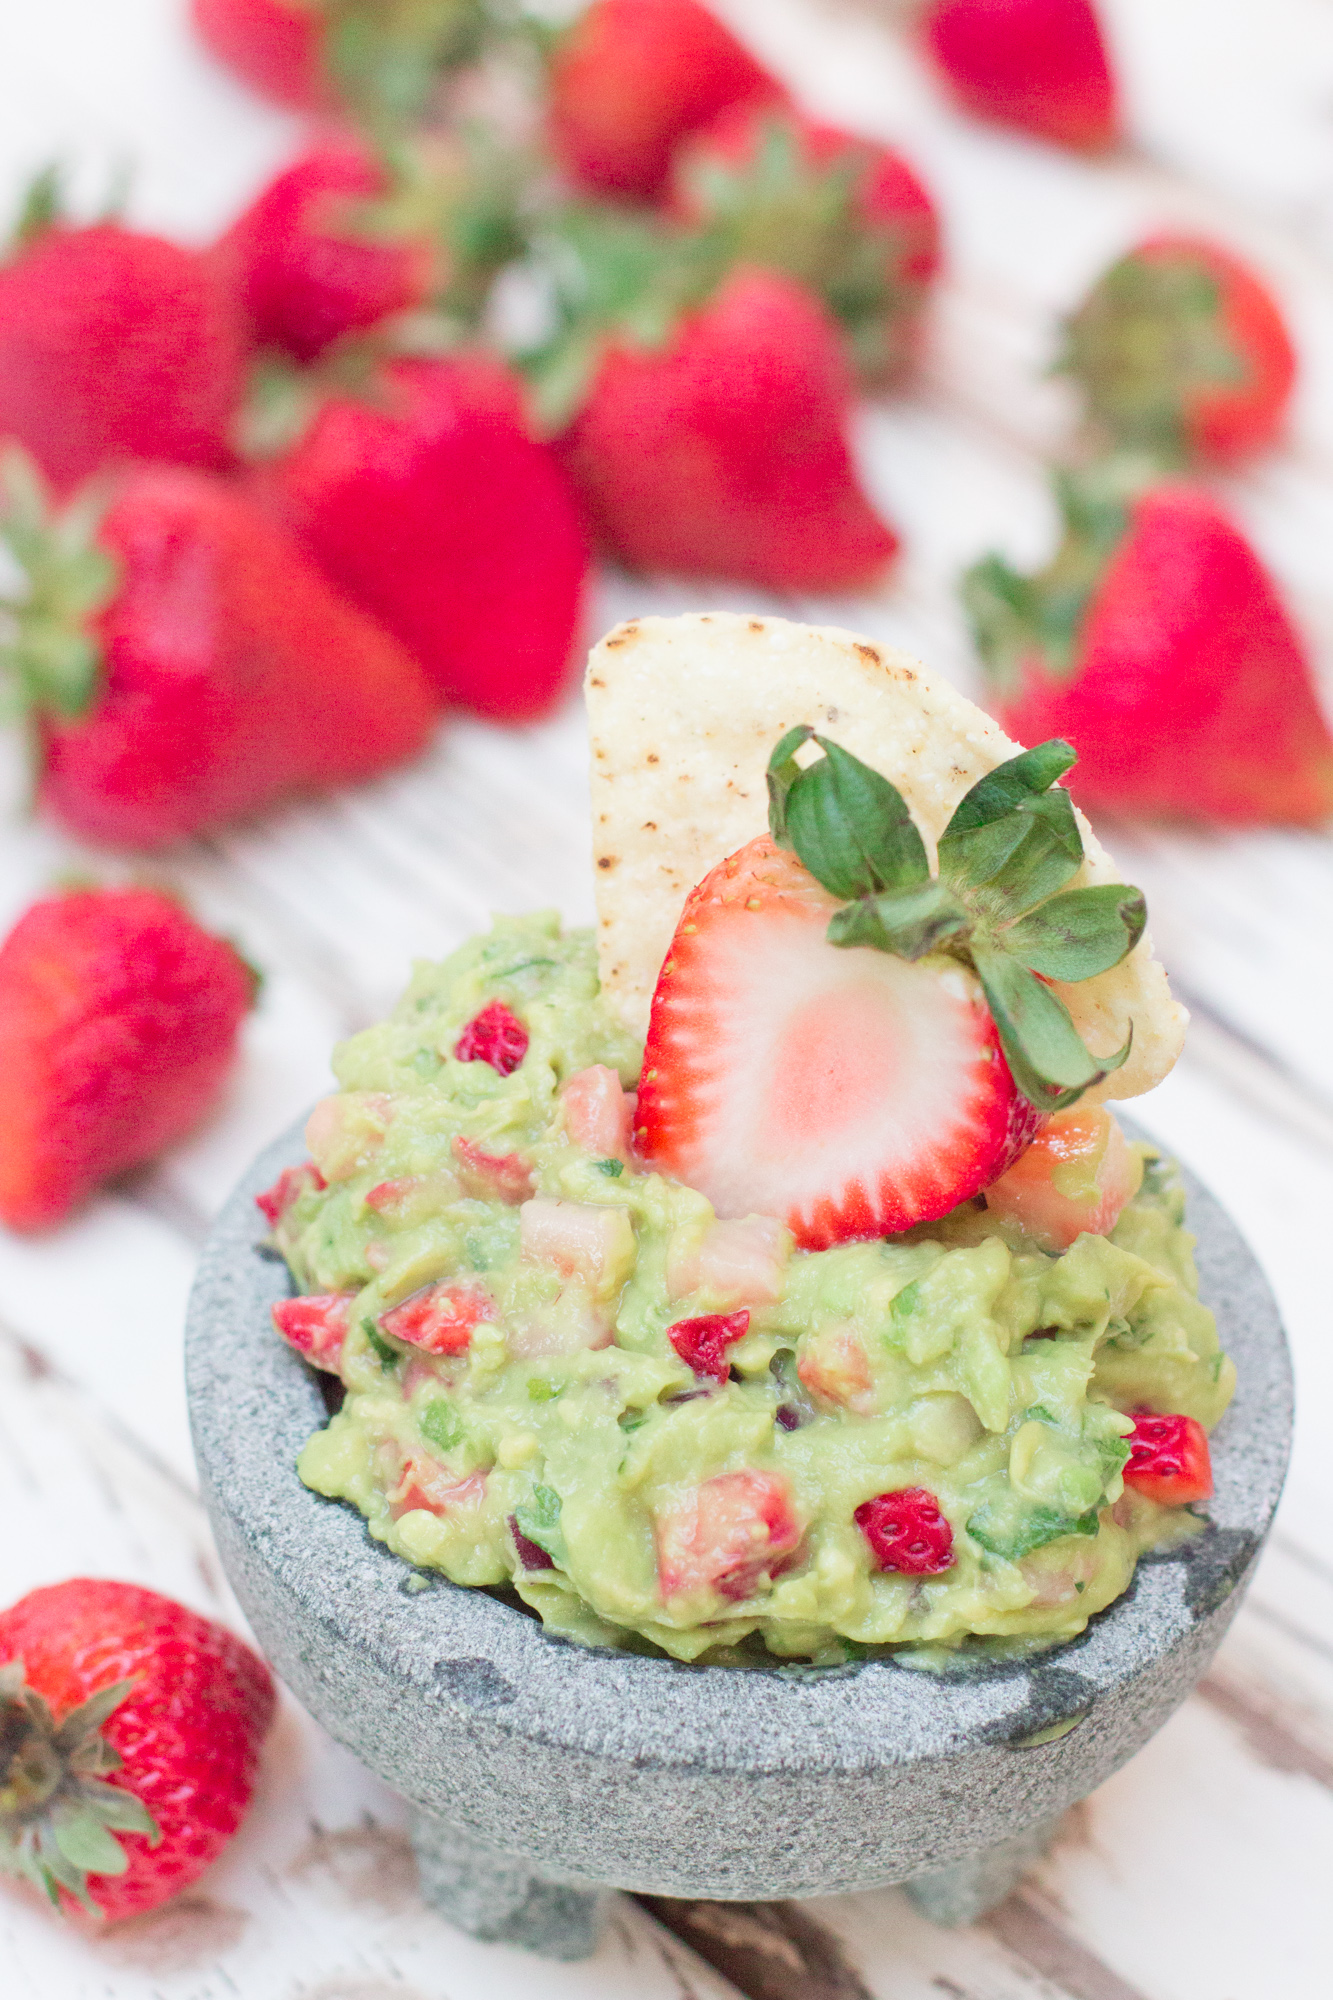 Strawberry Guacamole 1